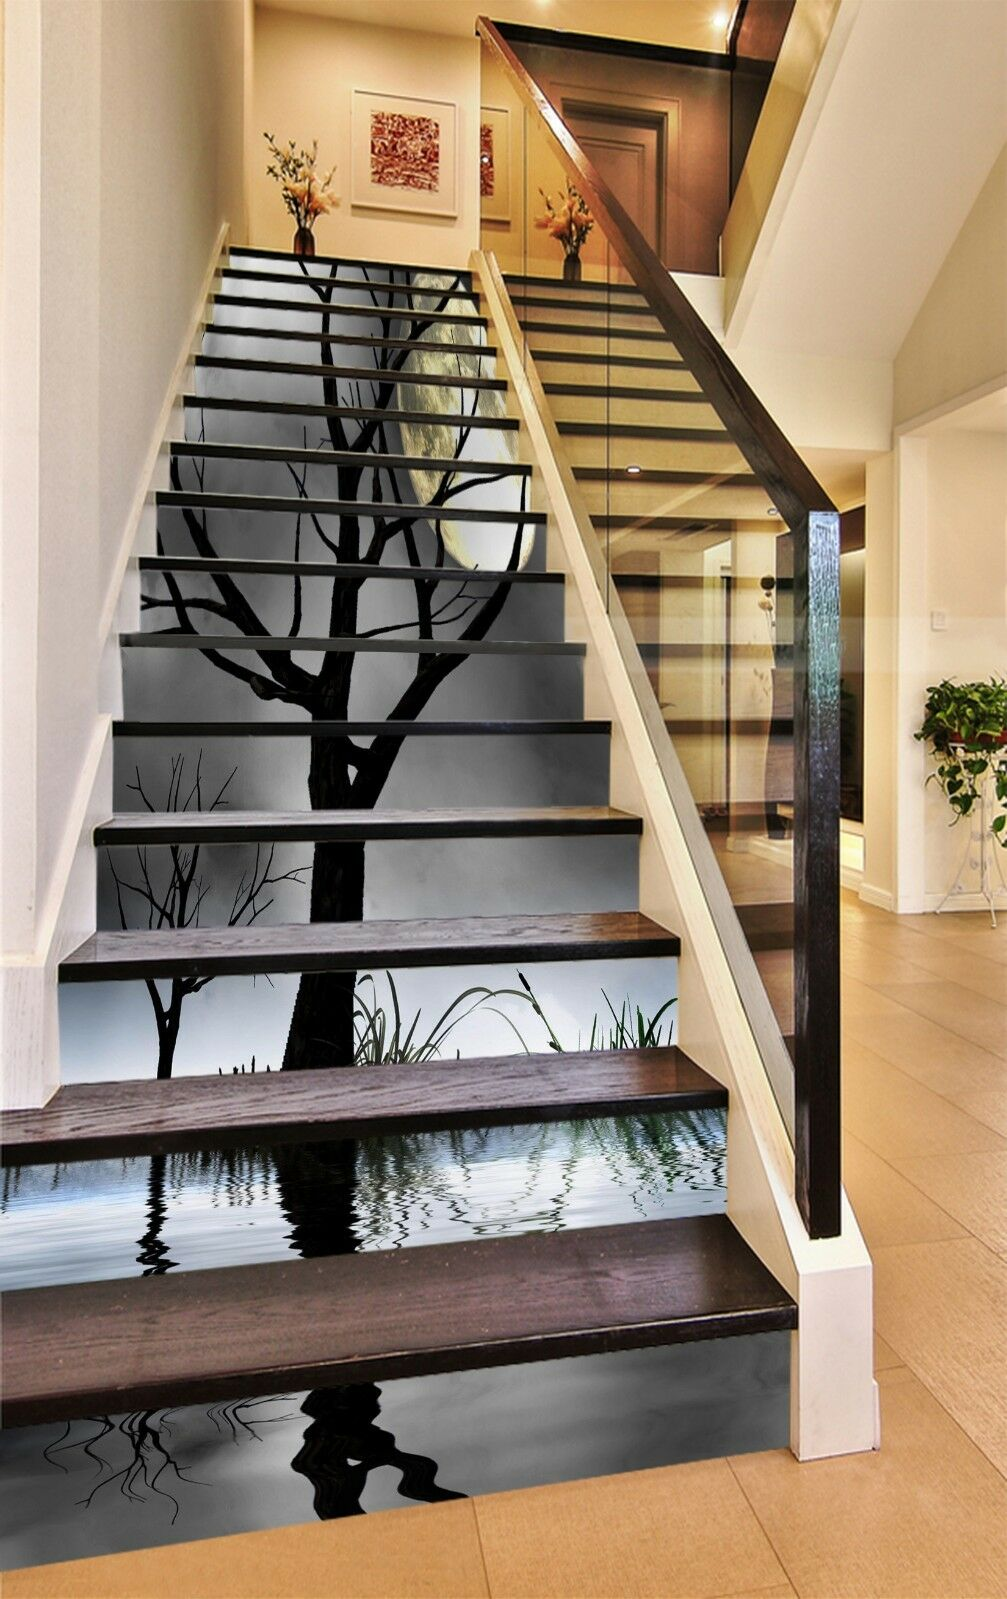 3D Branches Moon Stair Risers Decoration Photo Mural Vinyl Decal Wallpaper CA